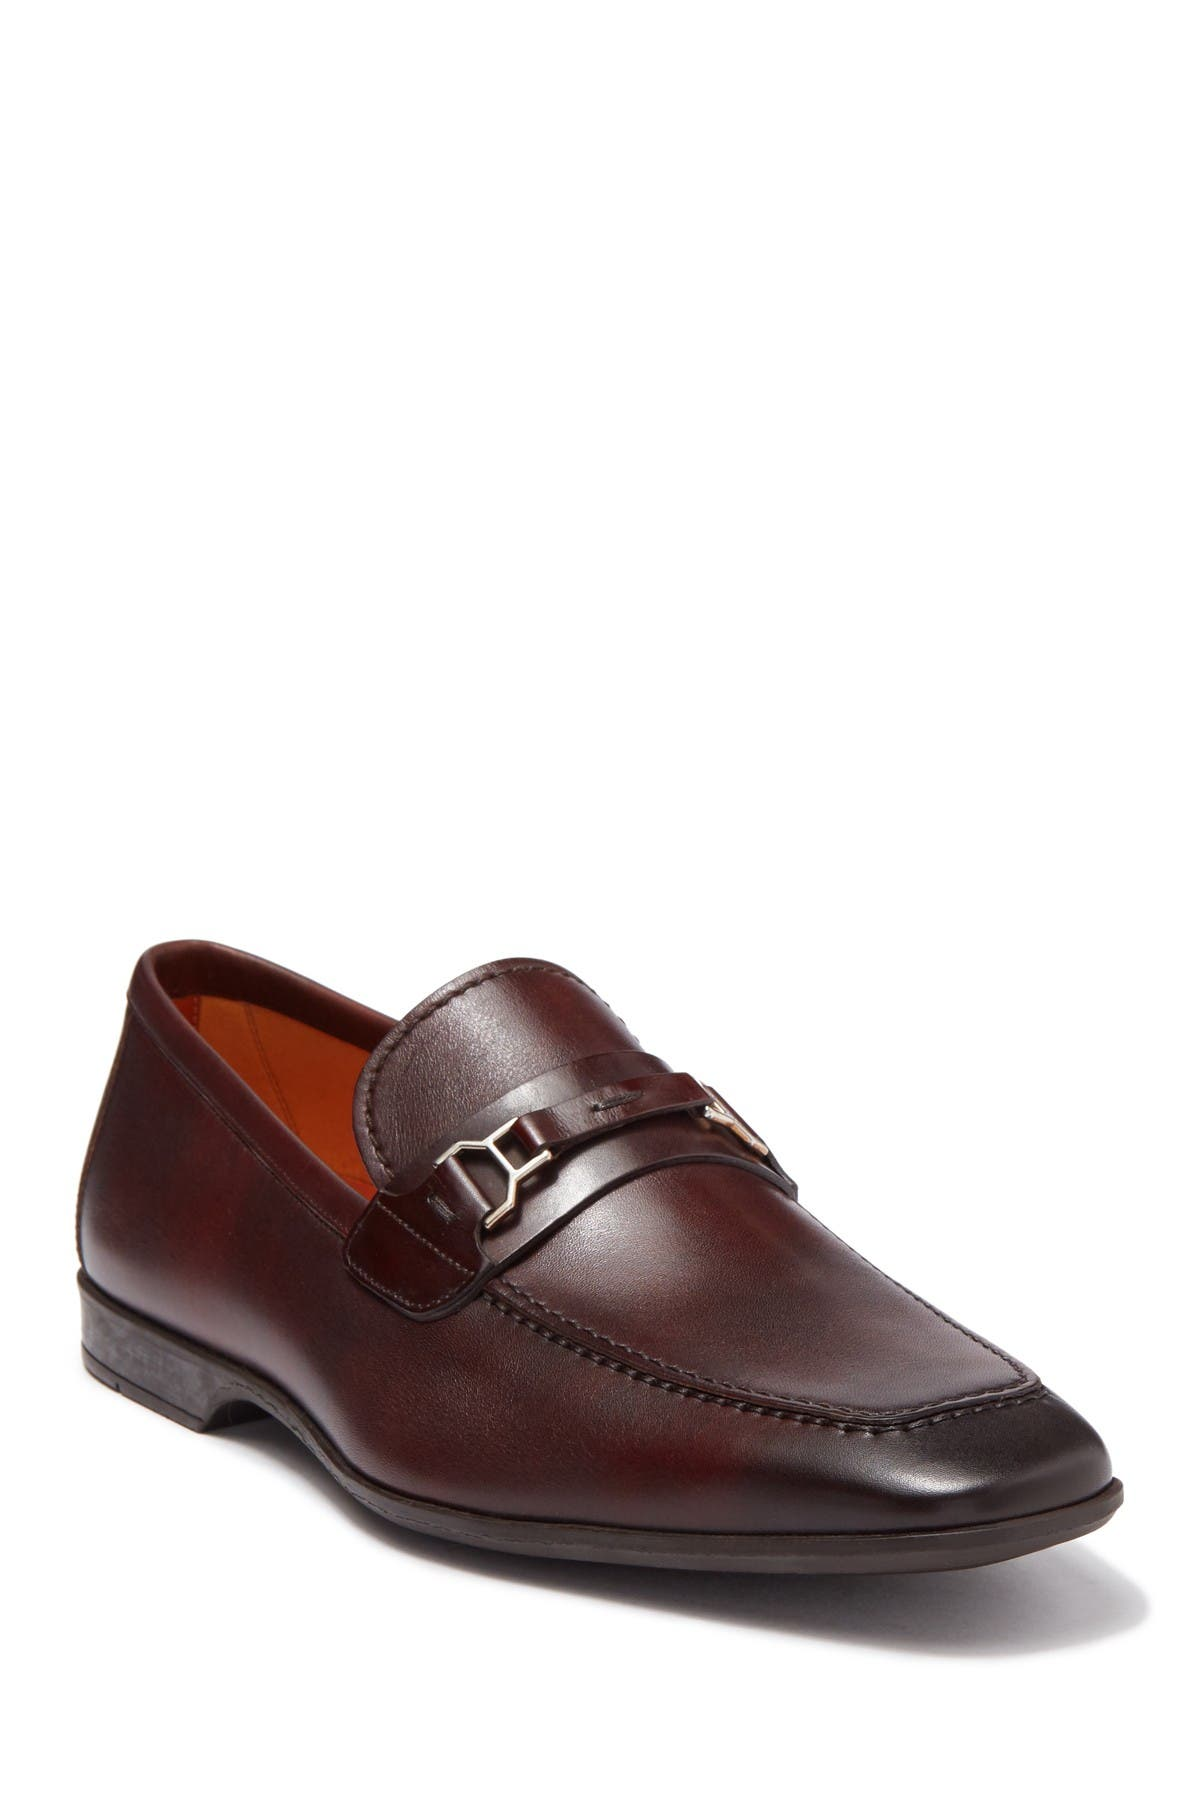 Image of Magnanni Chaplin Leather Bit Loafer